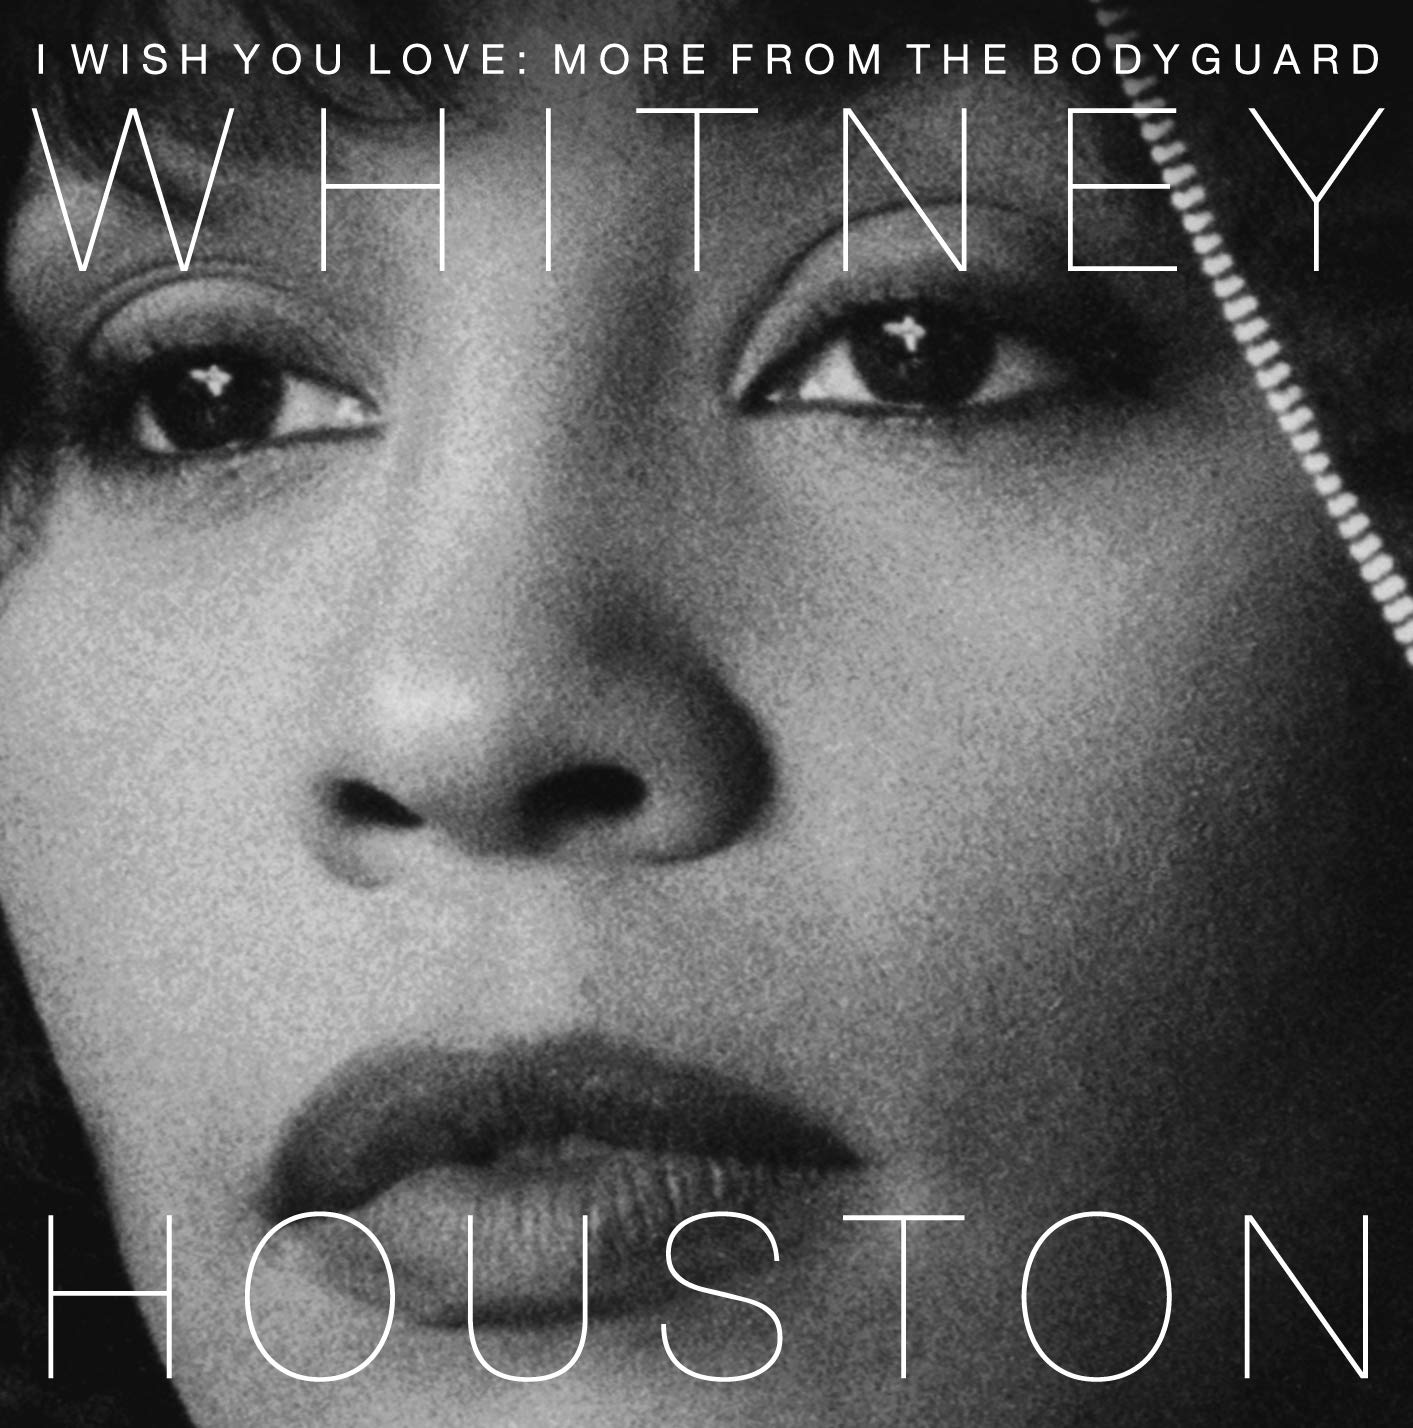 Whitney Houston - CD I Wish You Love: More From The Bodyguard